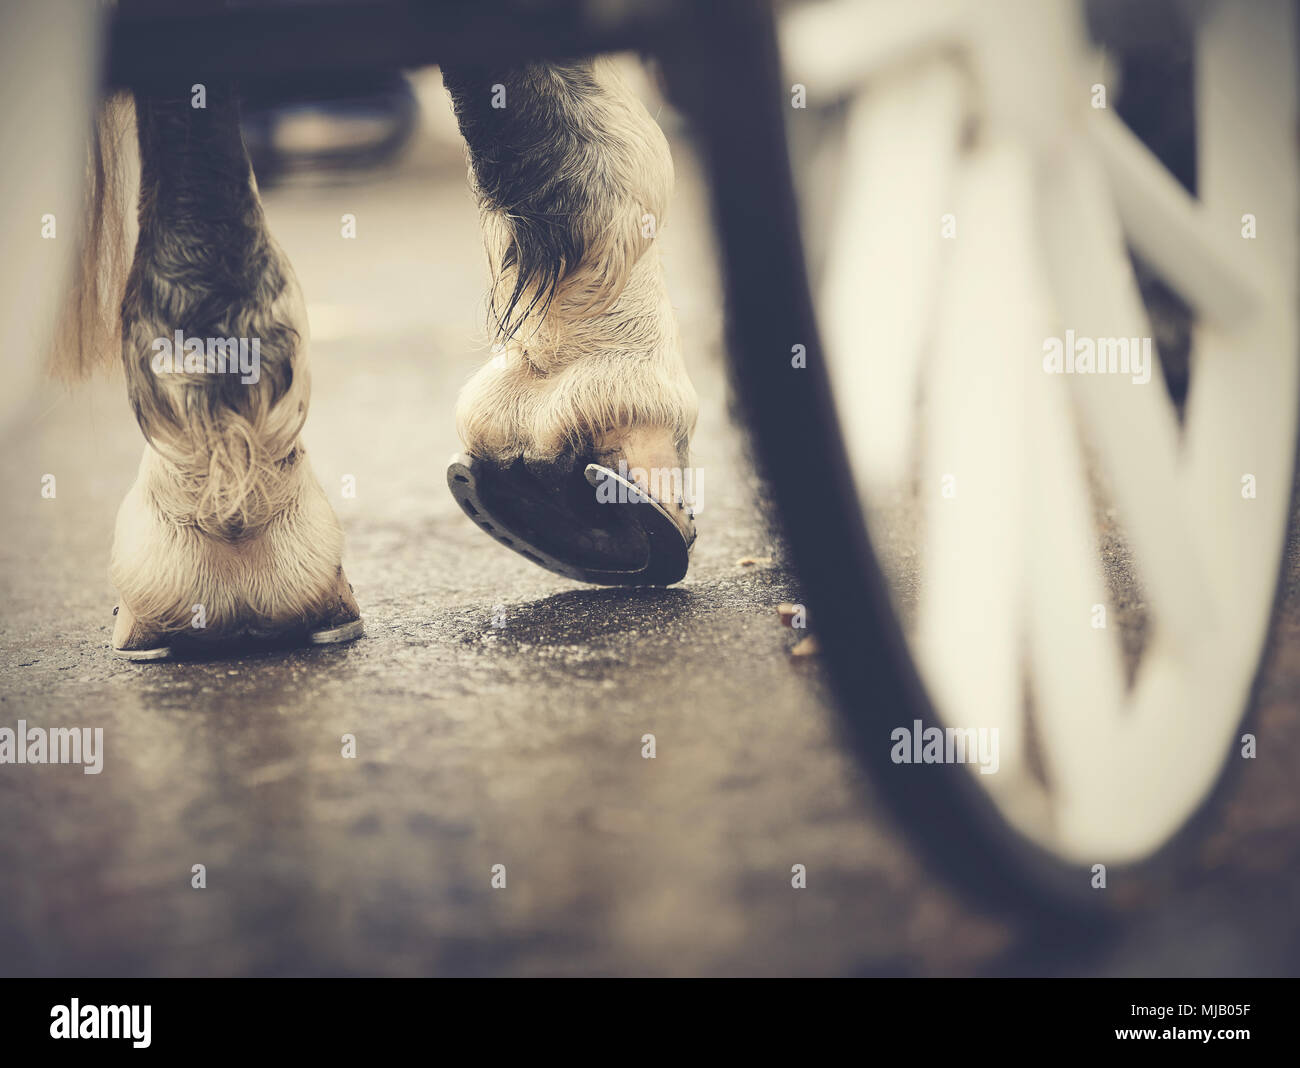 Horse-drawn transport. Hind hoofs with horseshoes of a harnessed horse, behind a white wheel of the carriage. - Stock Image